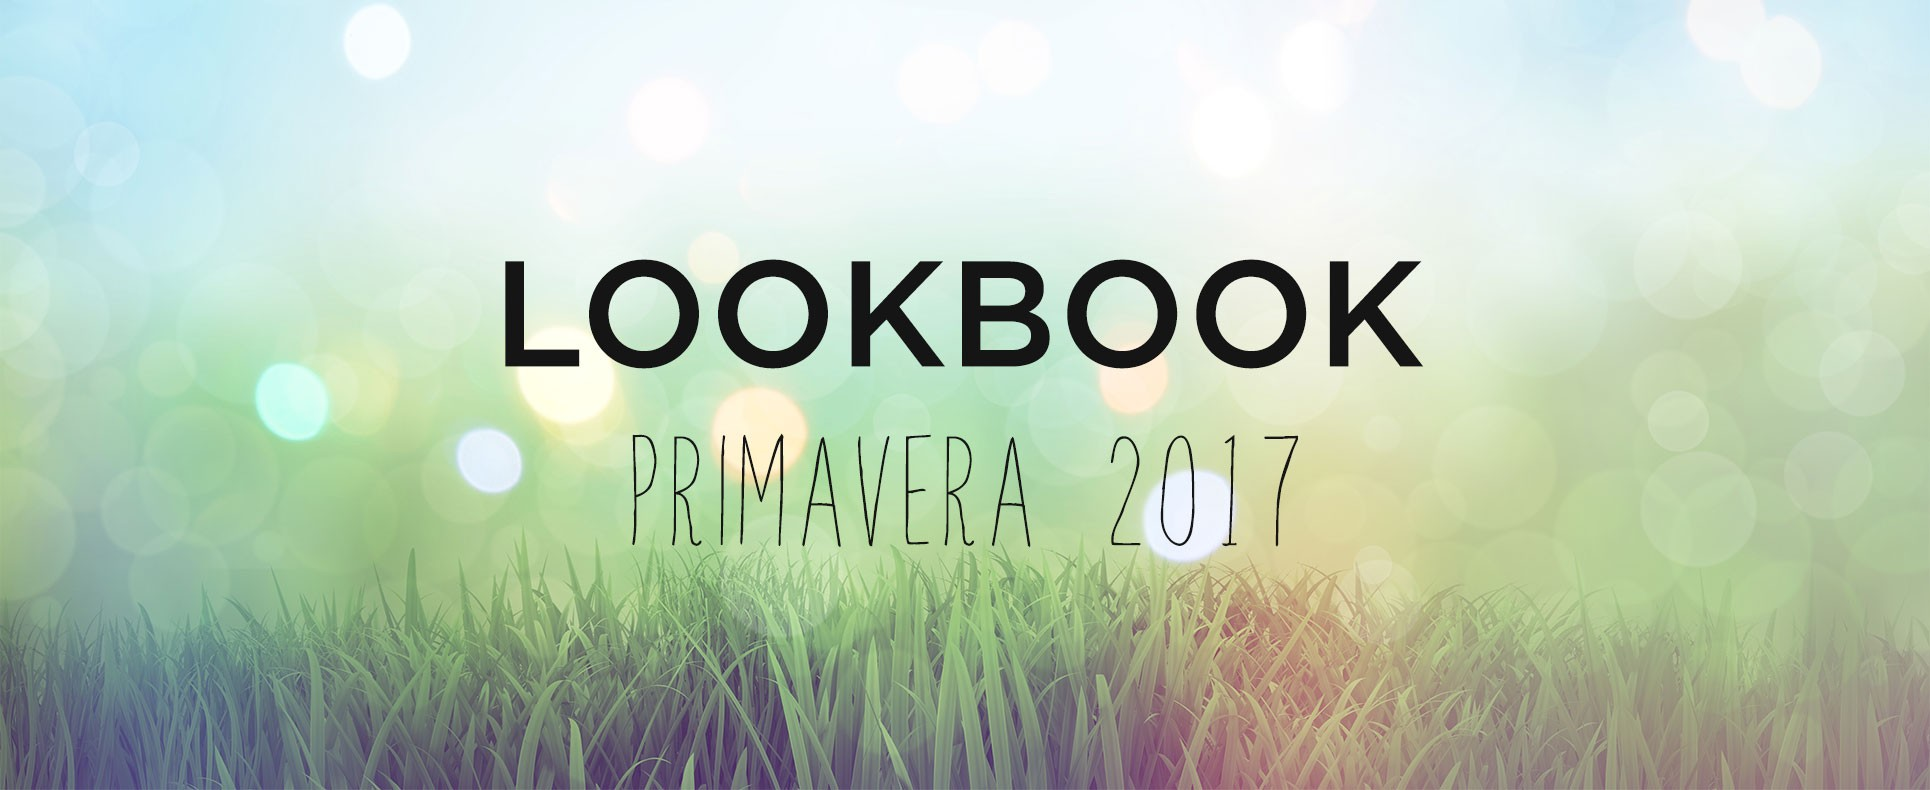 Lookbook primavera 2017